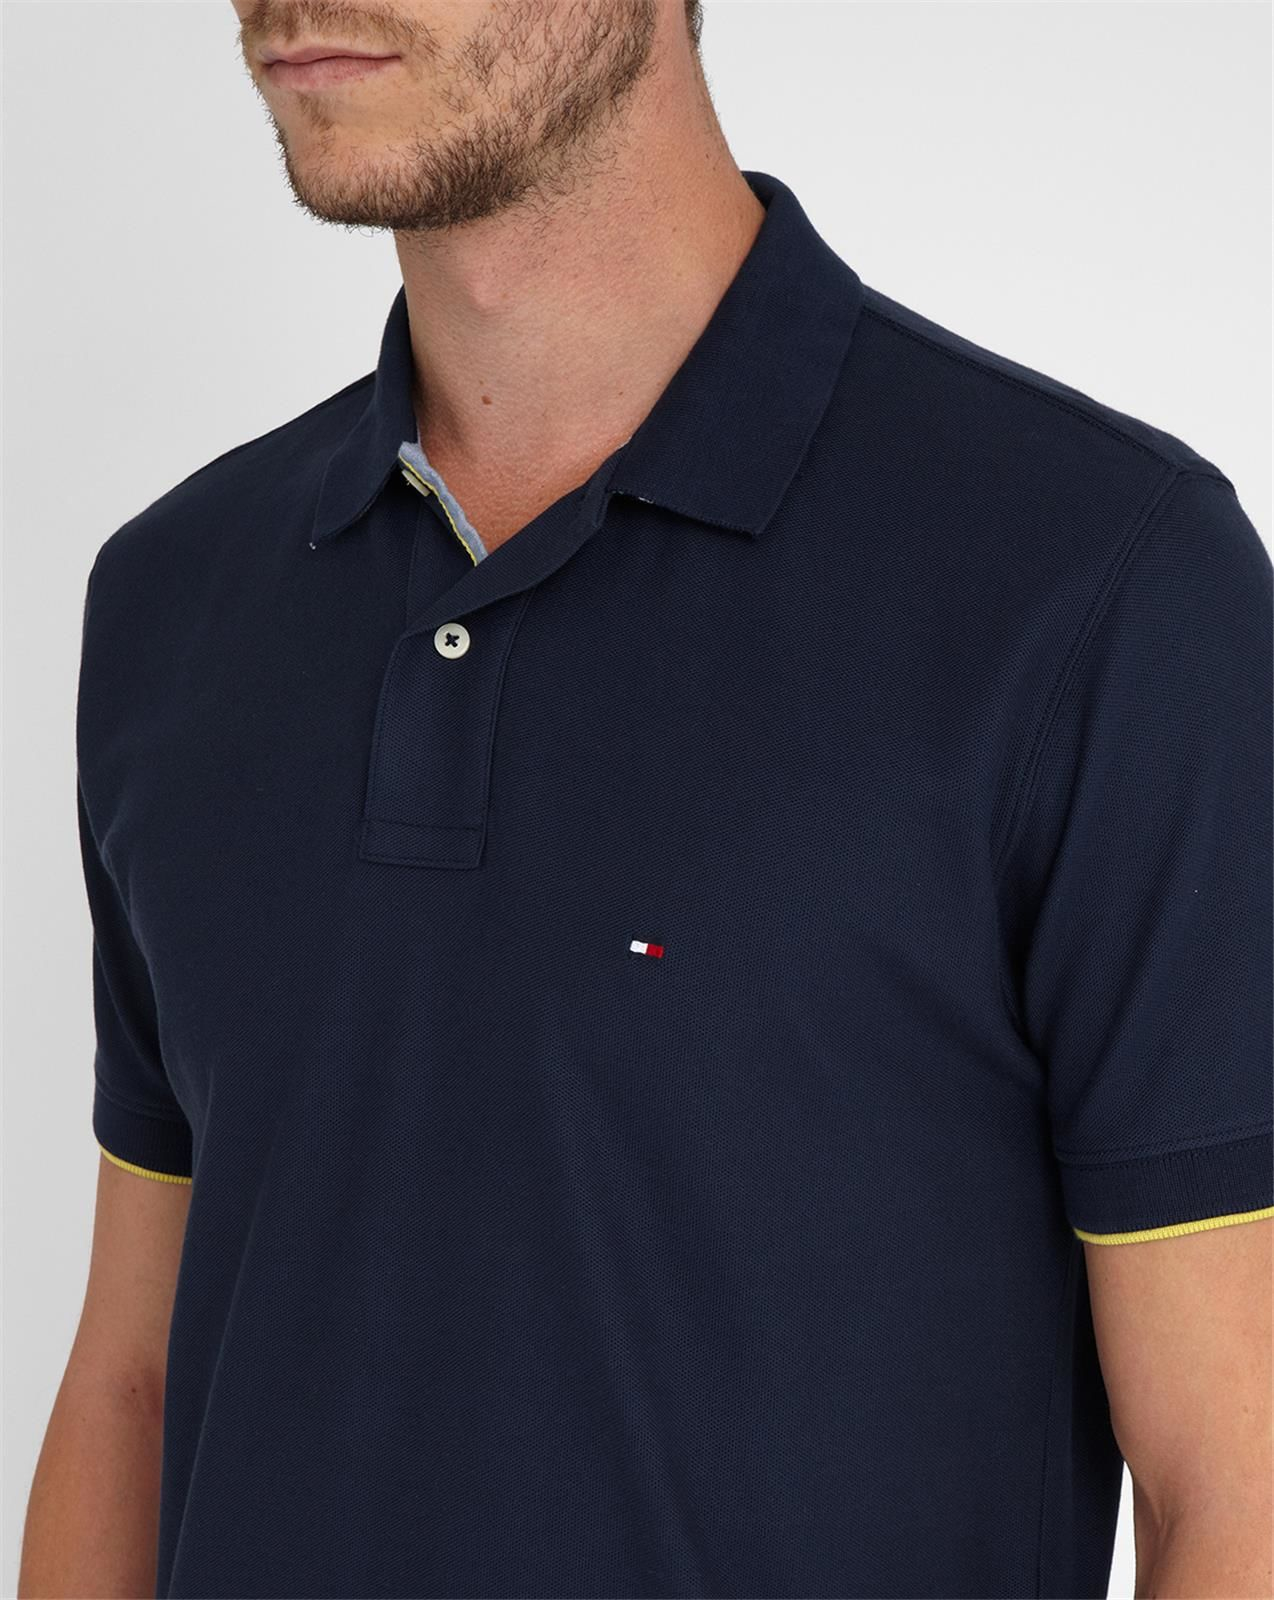 tommy hilfiger navy polo shirt with striped collar revers in blue for men lyst. Black Bedroom Furniture Sets. Home Design Ideas